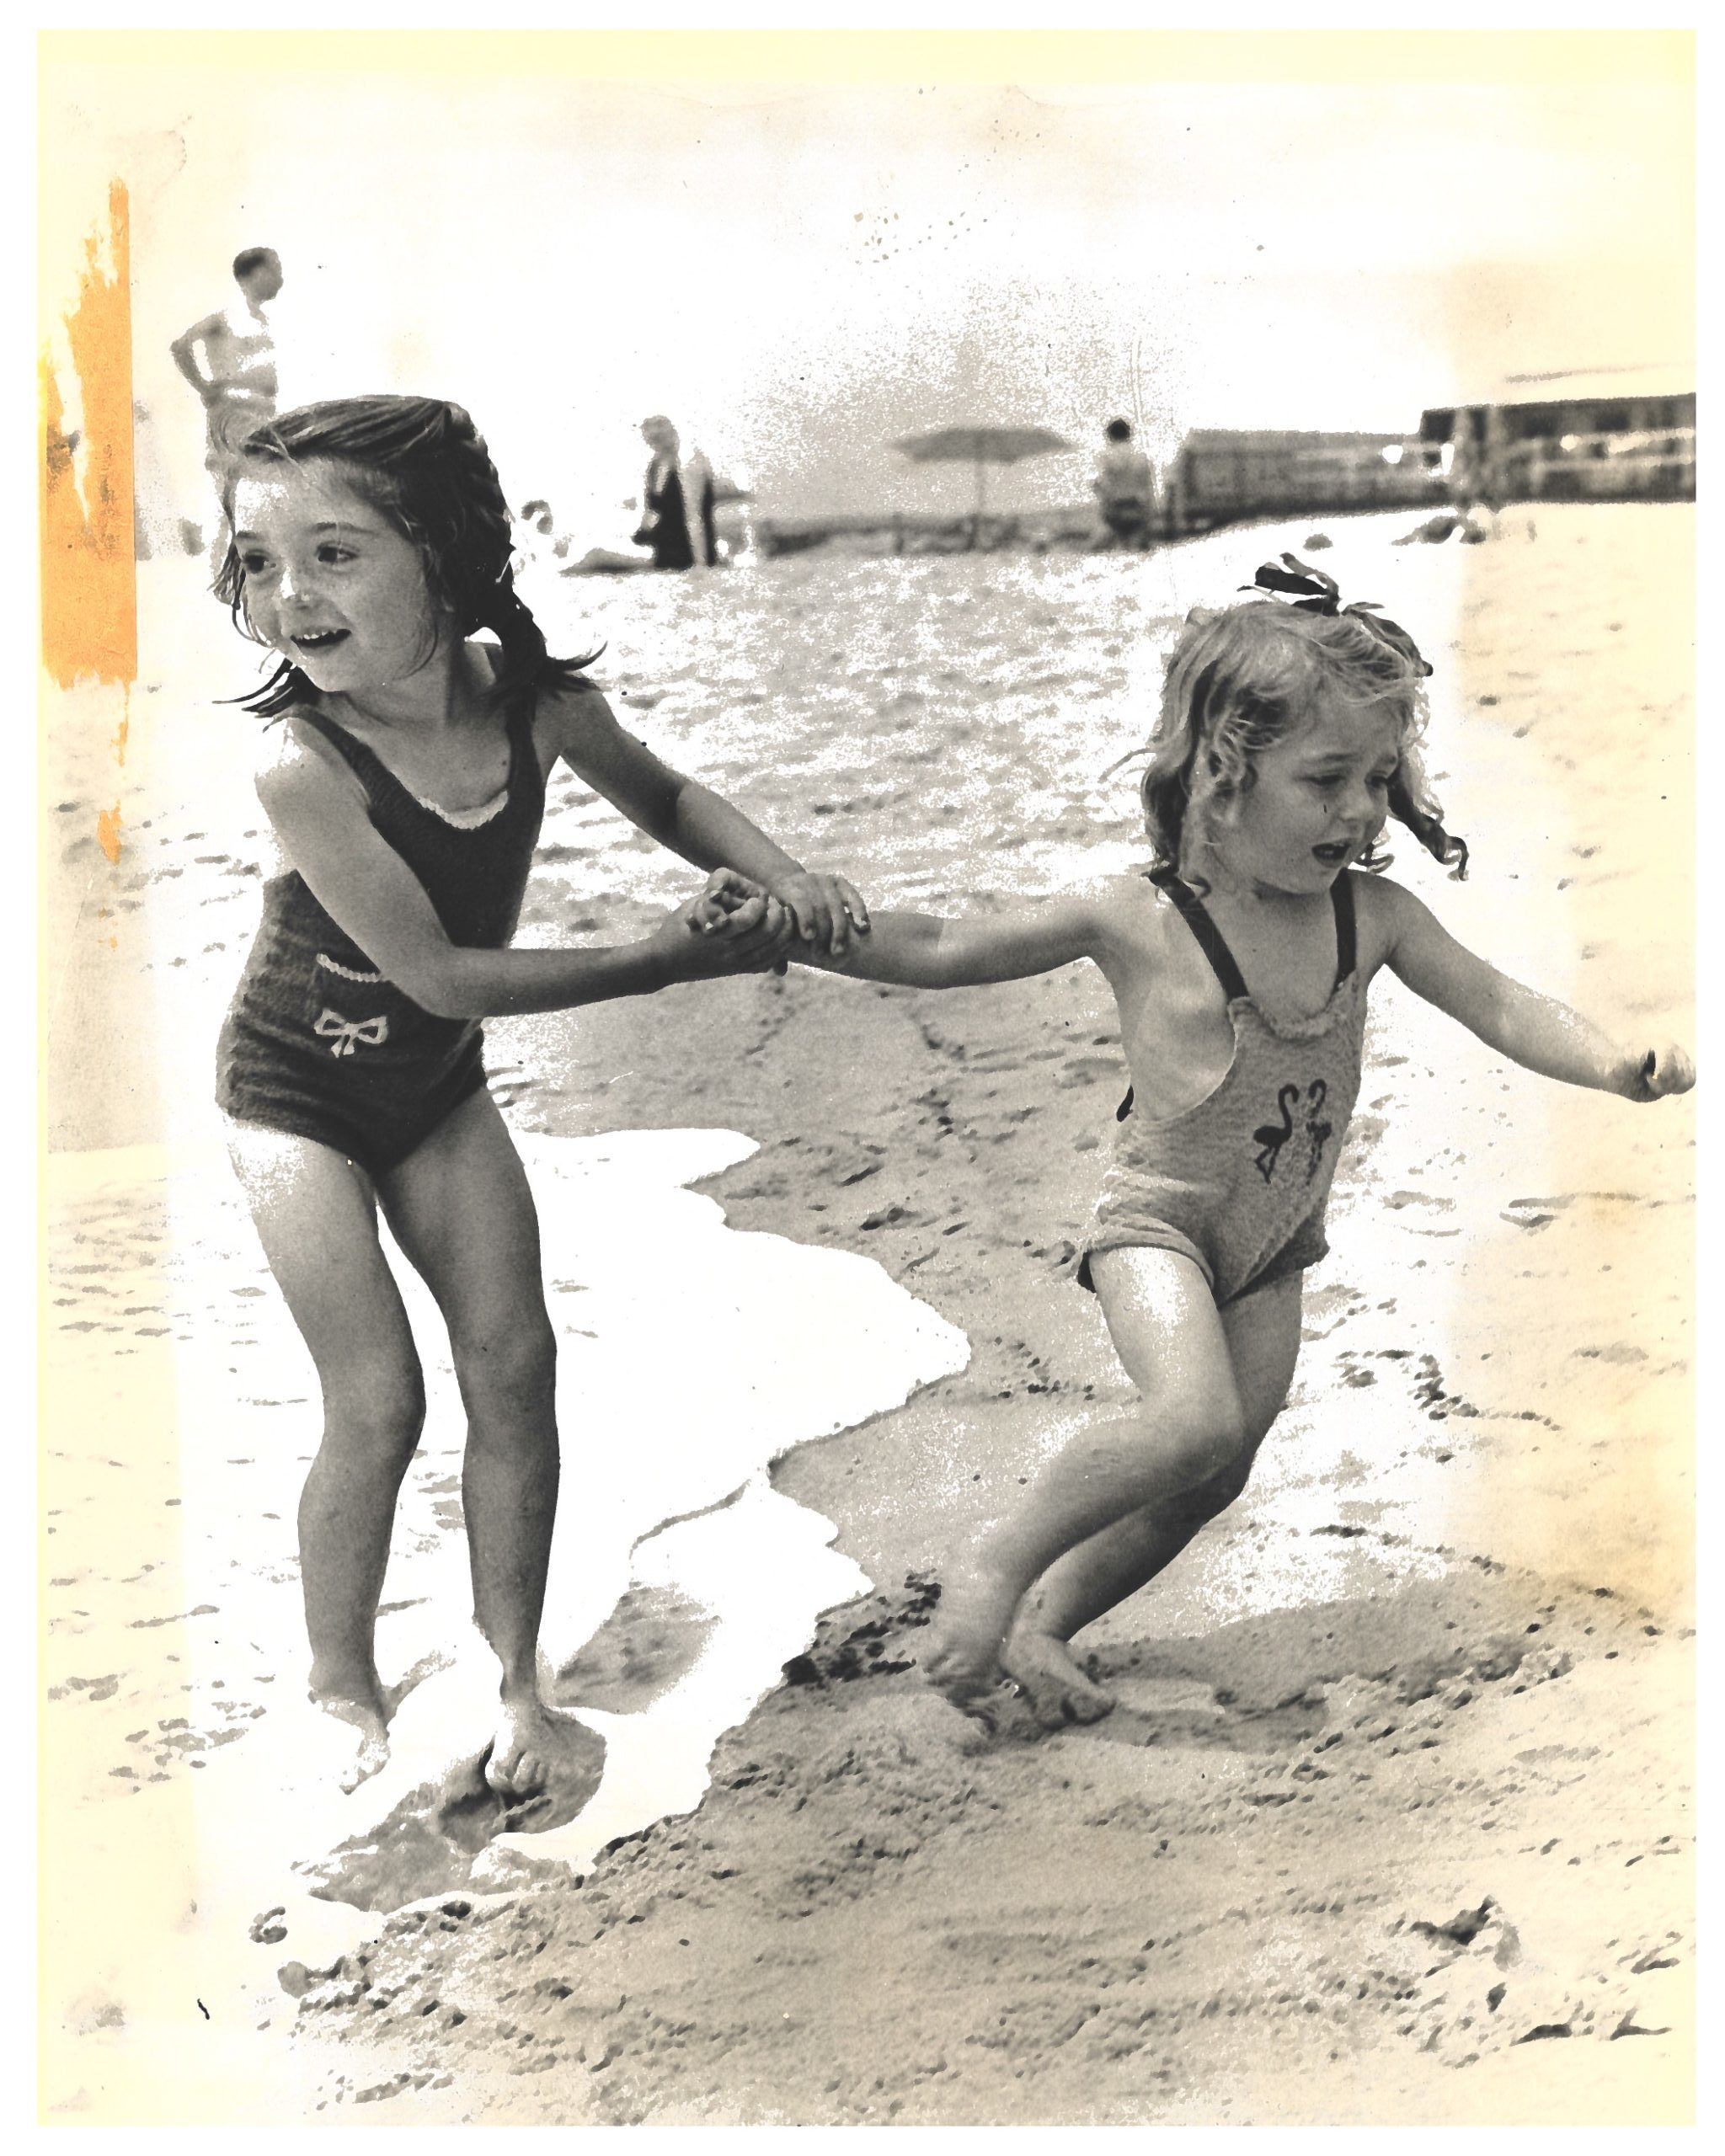 Lucy Thon and her little sister Adrienne at the Montauk Surf Club, July 8, 1942. COLLECTION OF THE EAST HAMPTON HISTORICAL SOCIETY